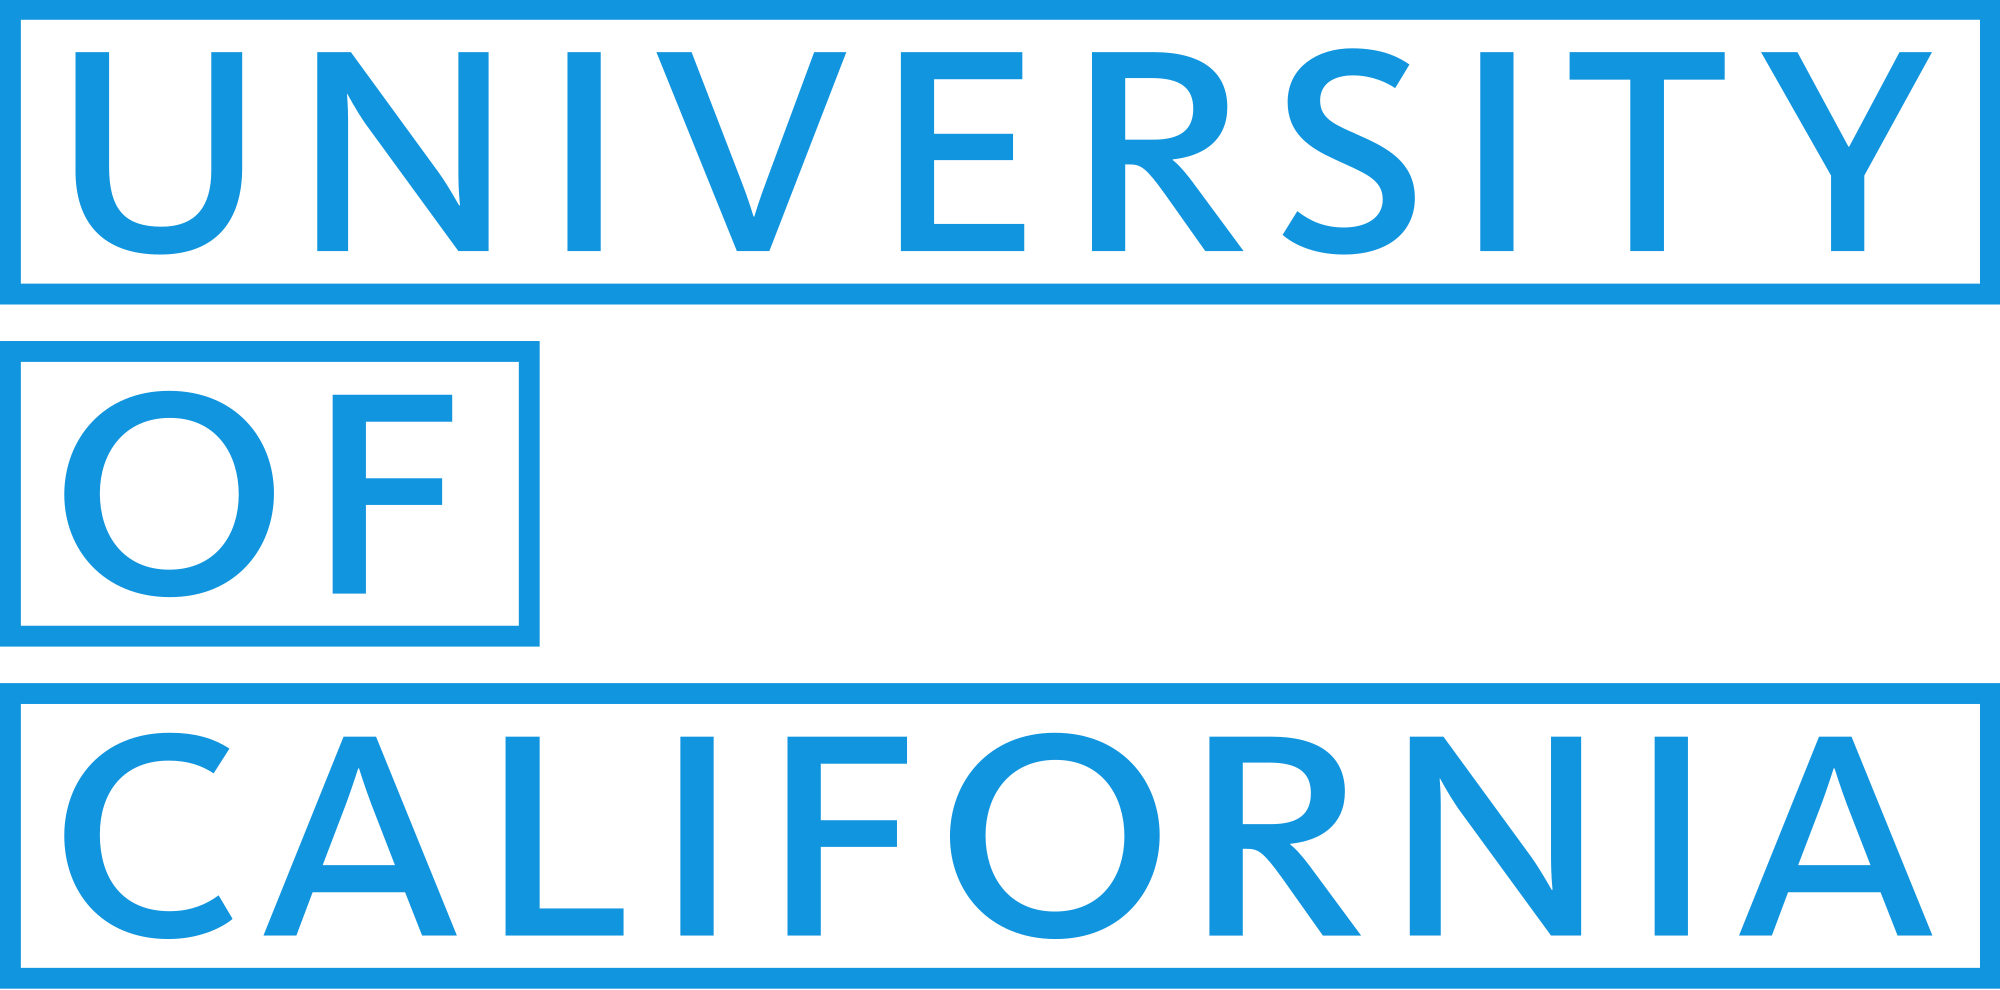 University of california logo png